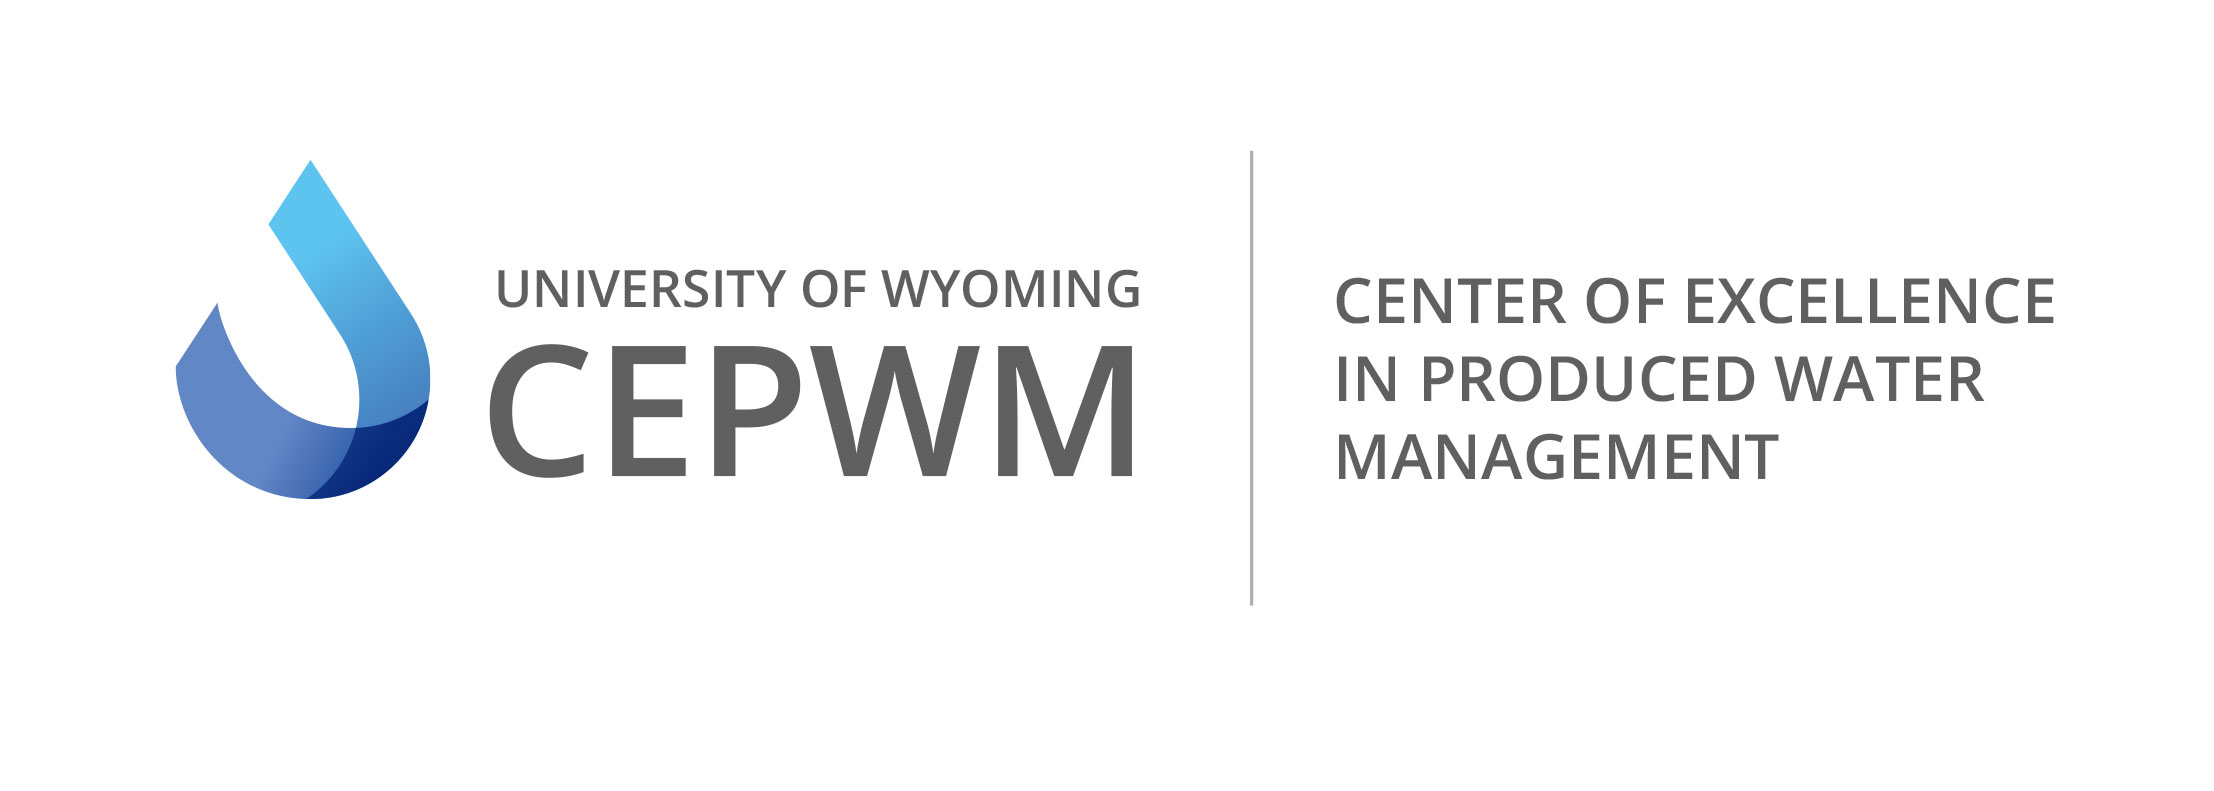 "alt=""university of wyoming center of excellence in produced water management papermoon creatives"""